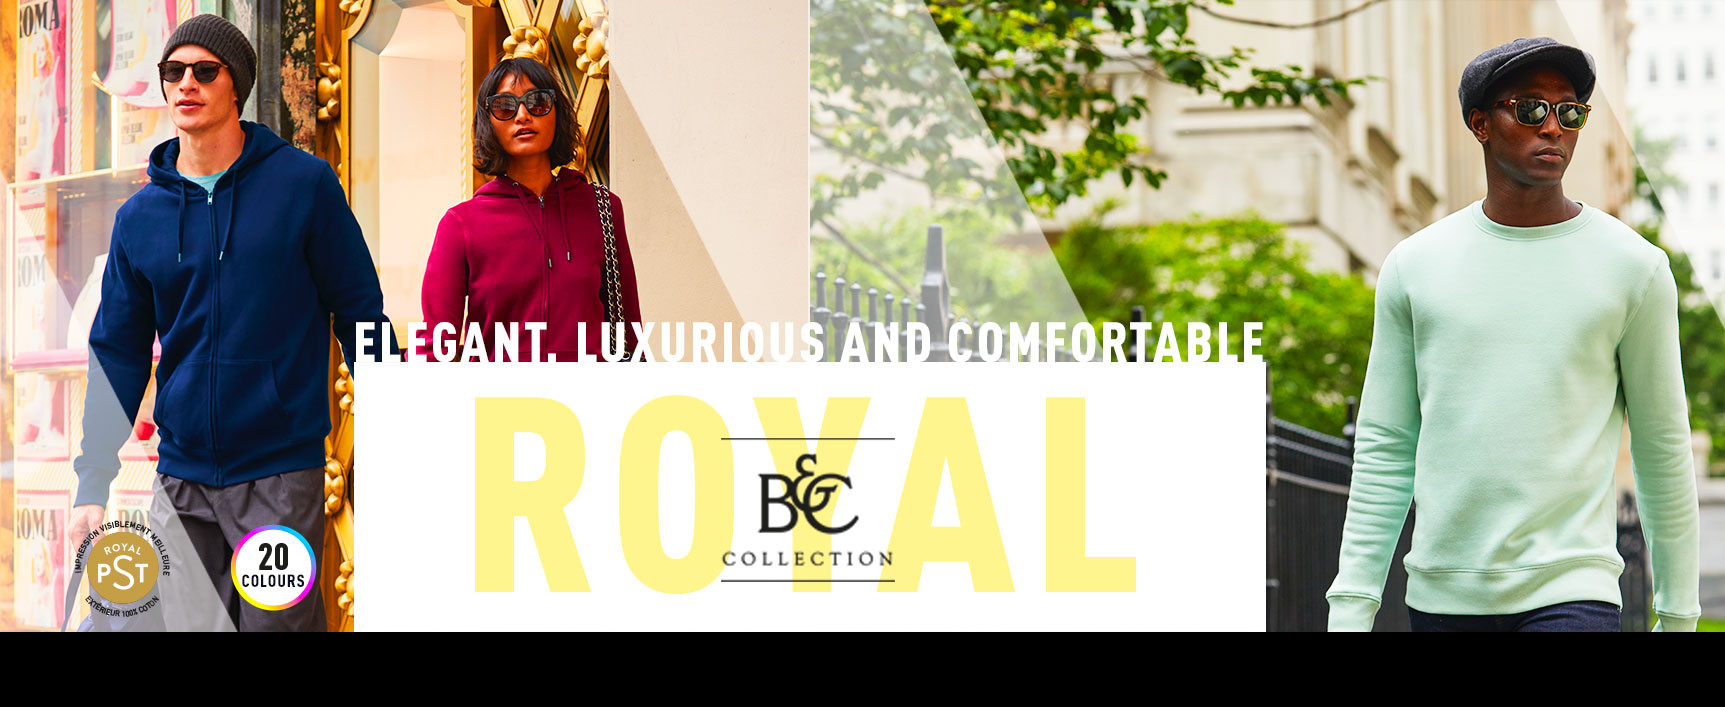 B&C : Royal Collection